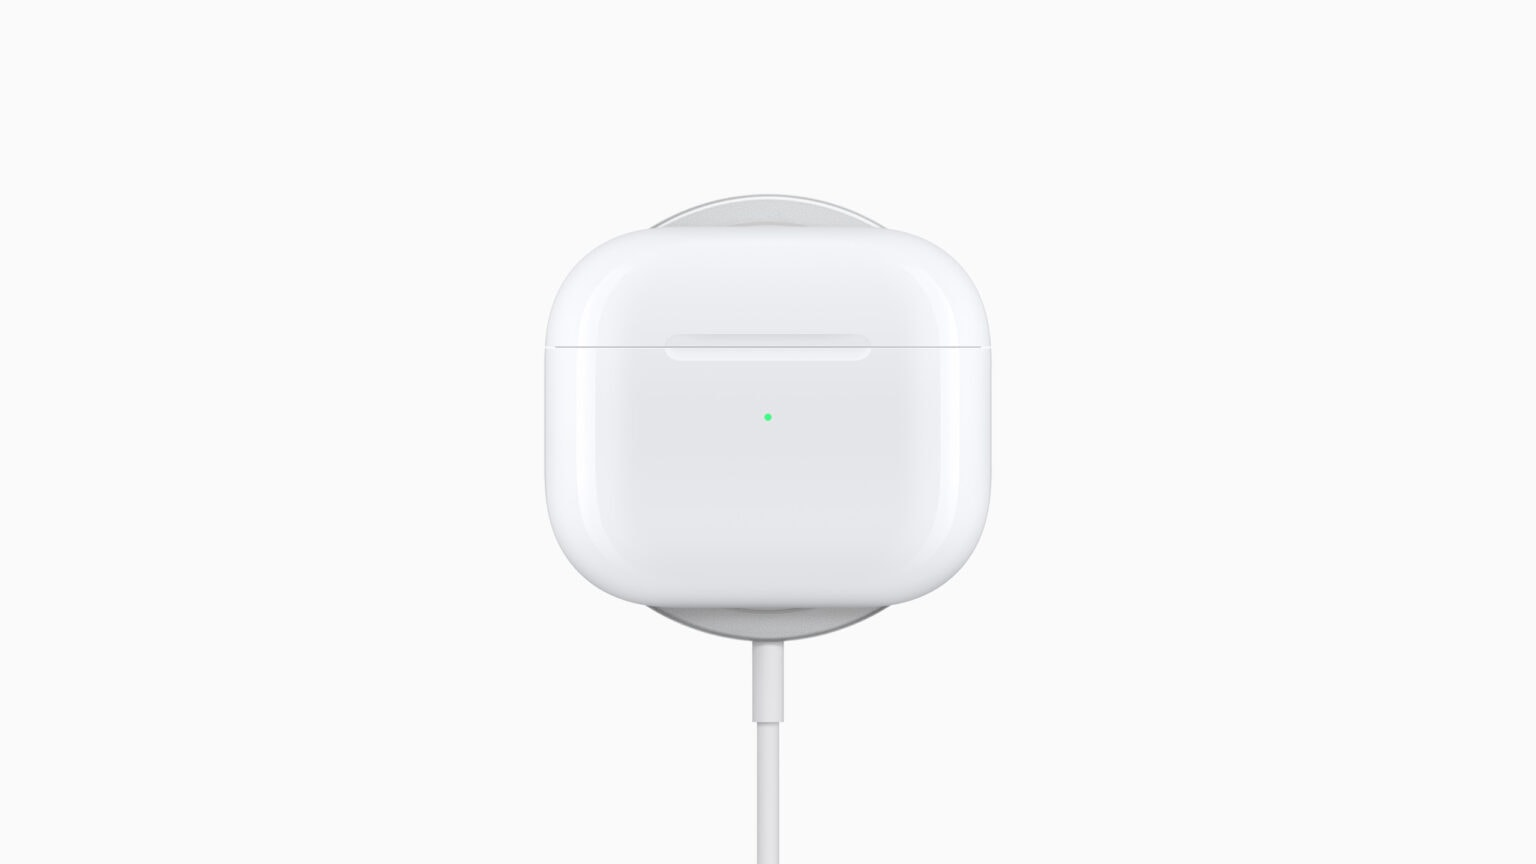 AirPods Pro with MagSafe Charging Case